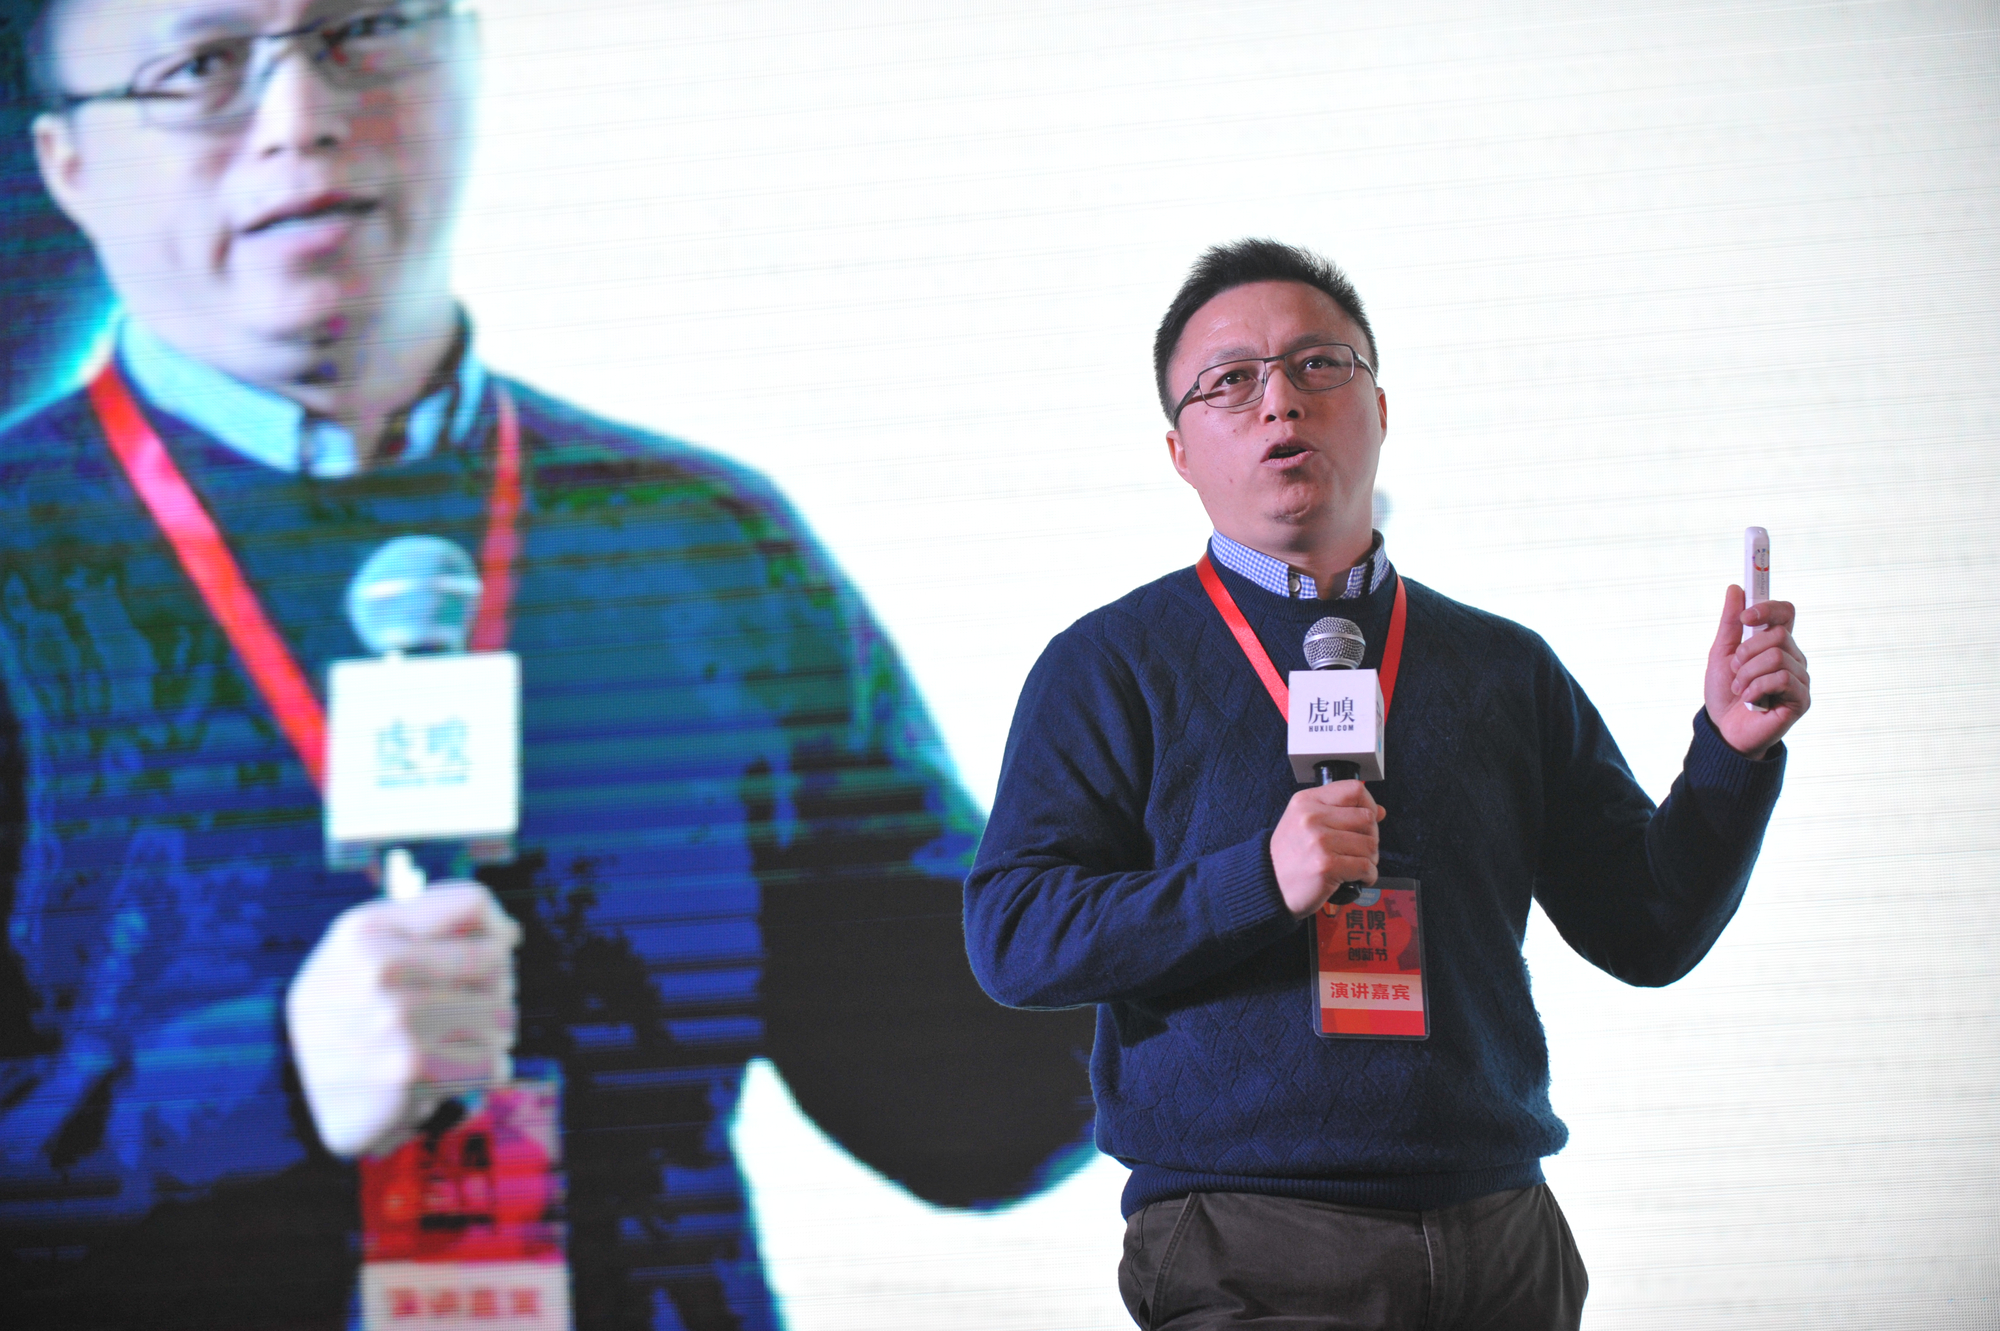 Jack Ma's Ant Financial appoints new CEO ahead of IPO - CGTN